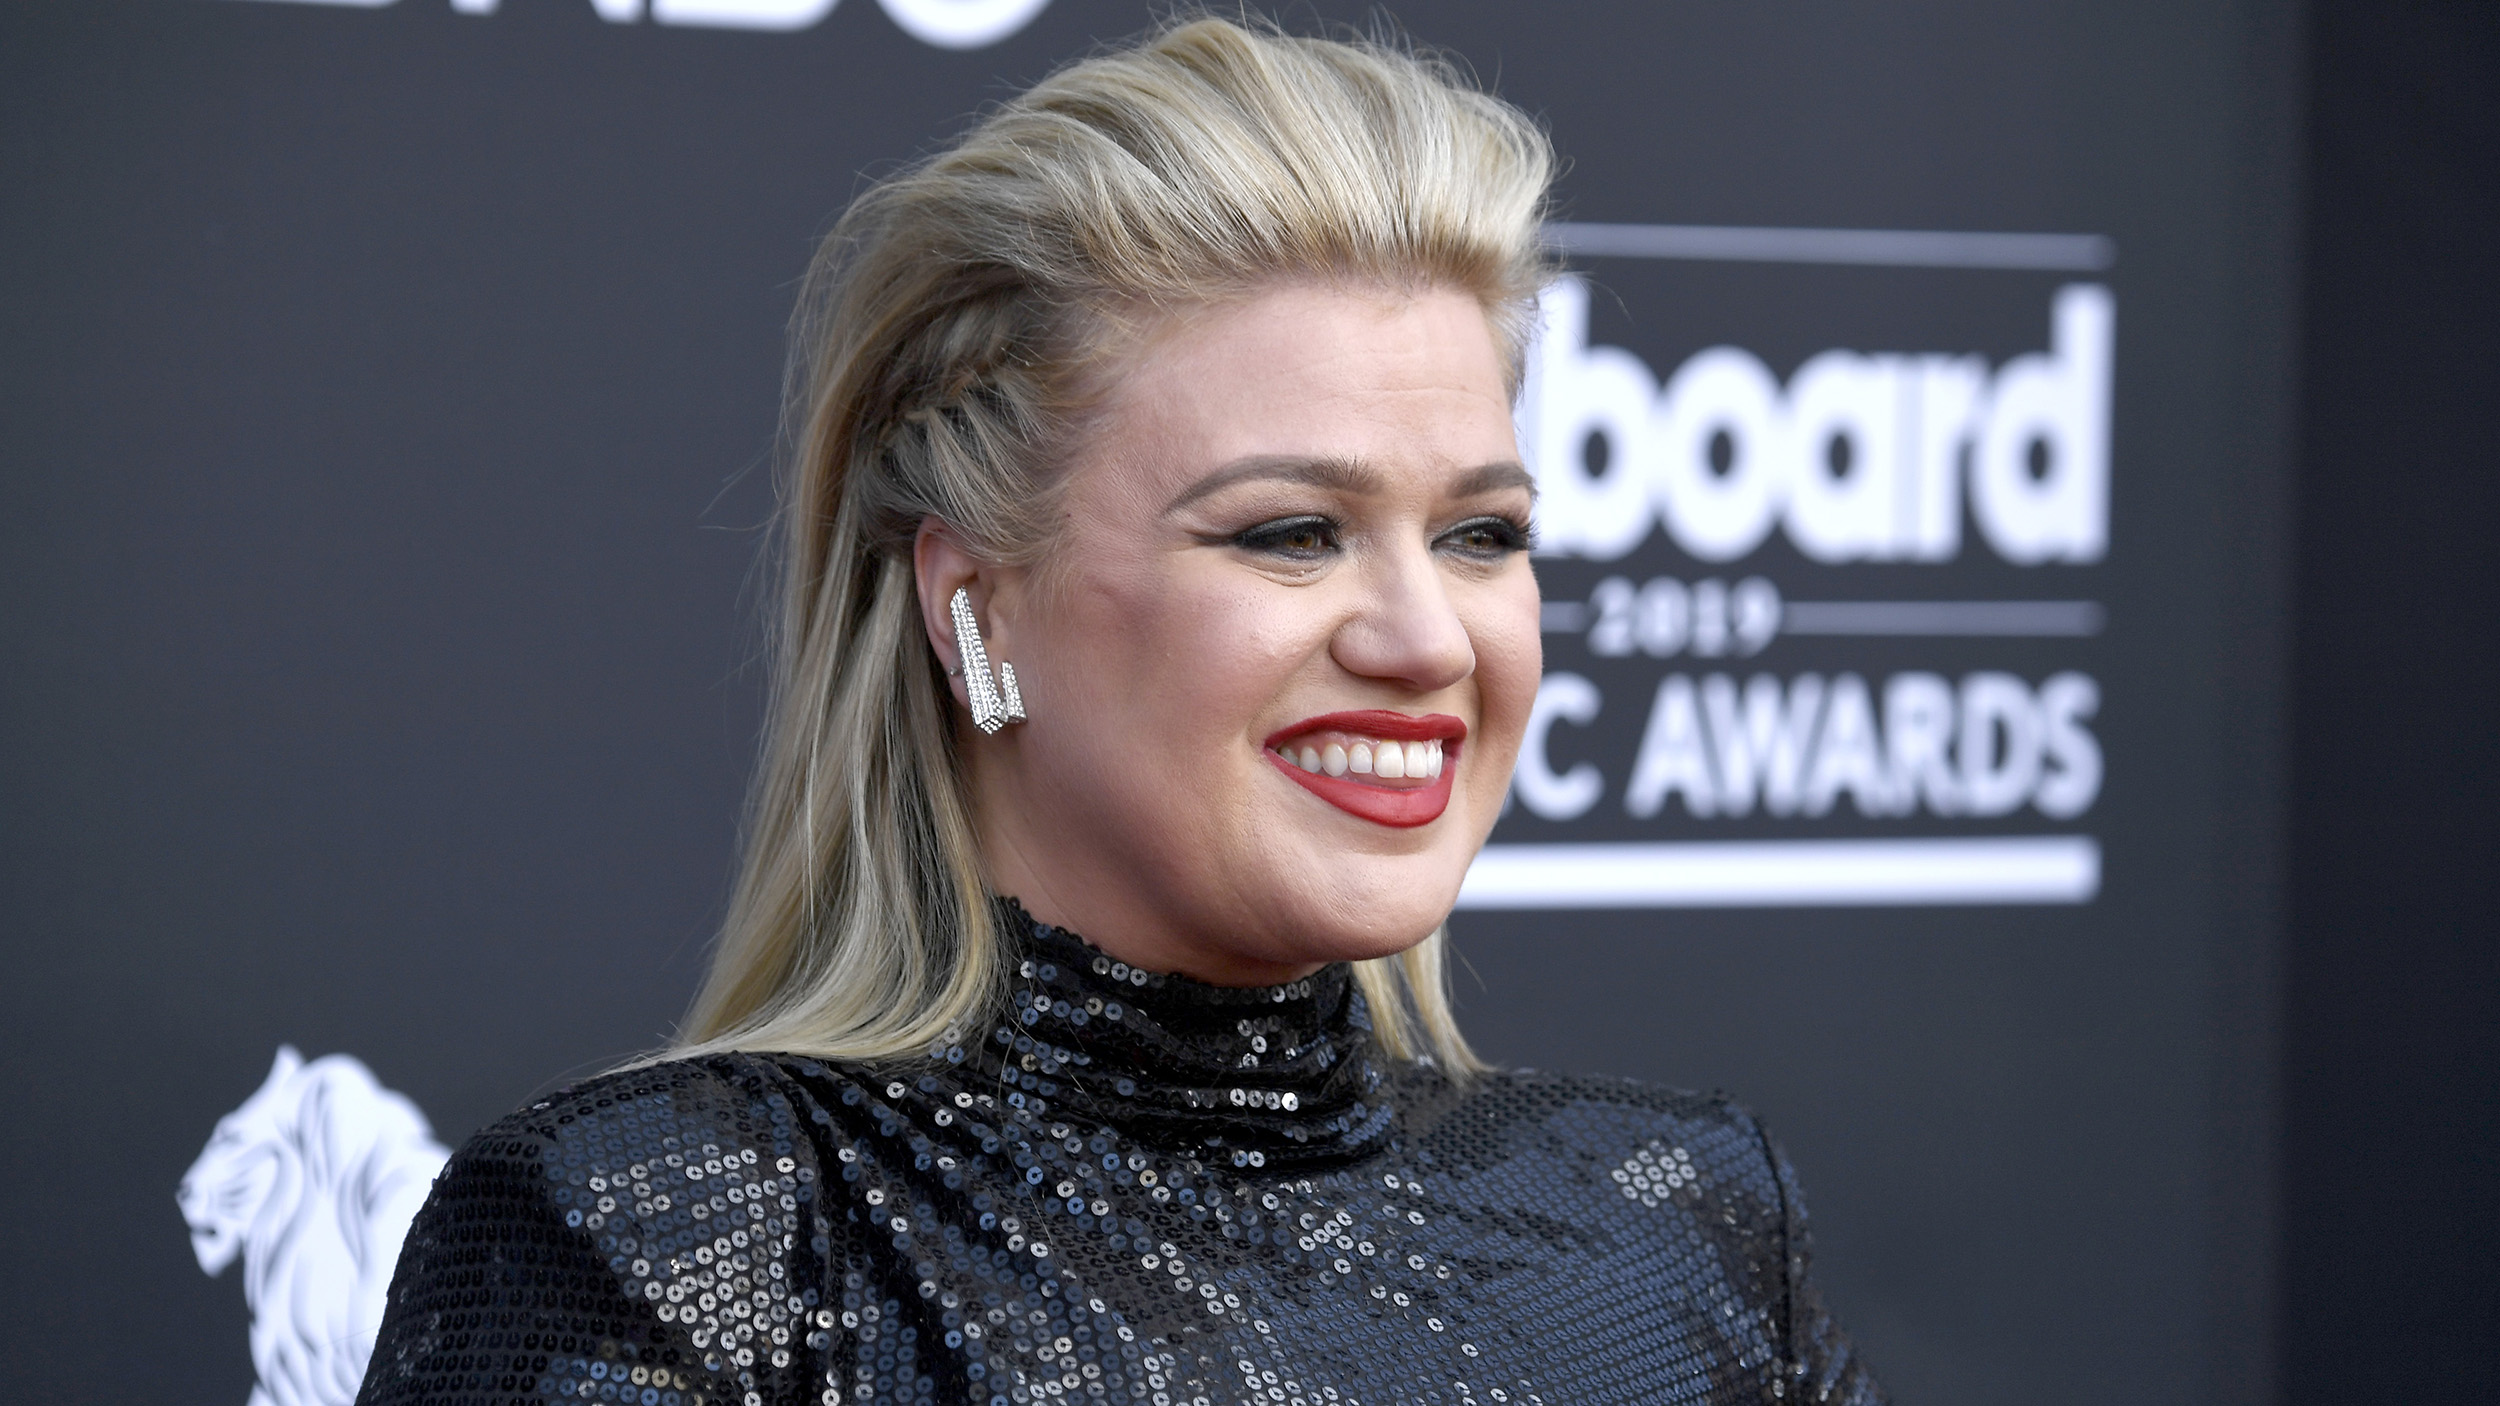 Kelly Clarkson to fill in for Simon Cowell on